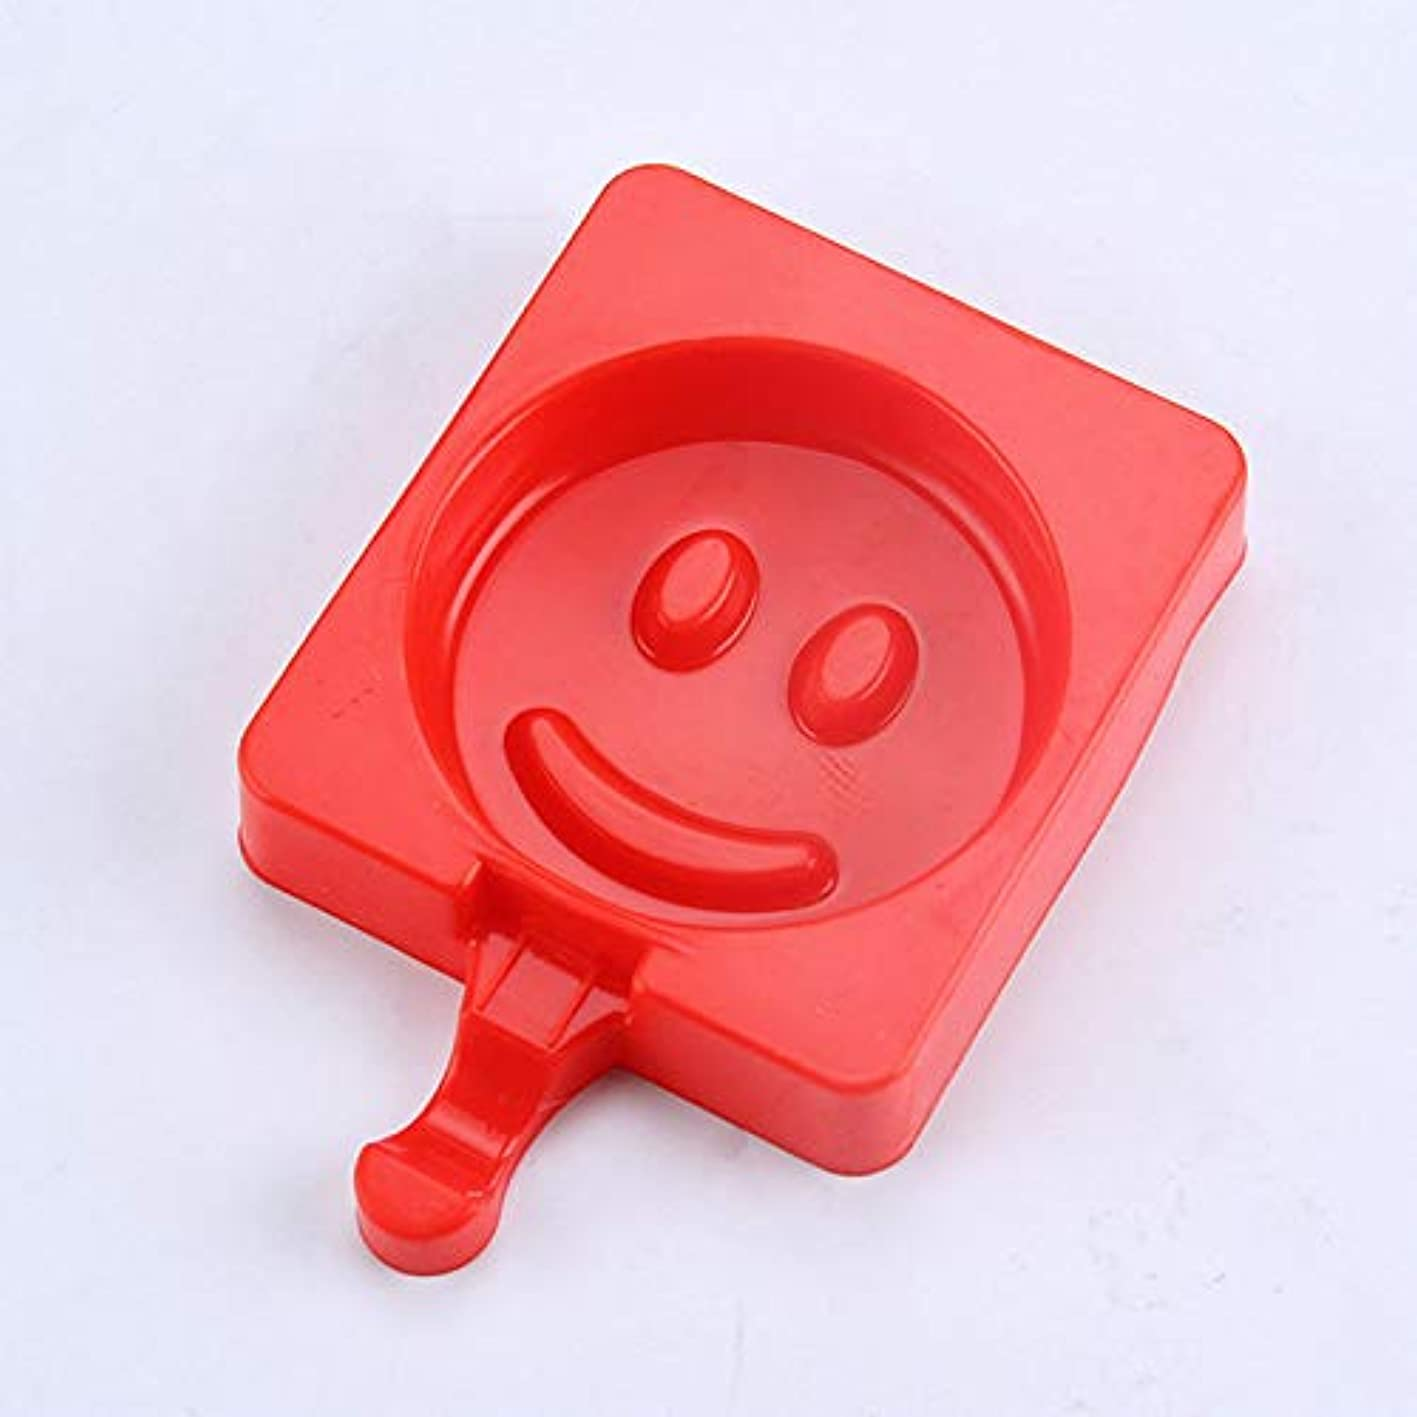 1 Set AMW Smile Face Ice Cream Mold Silicone Ice Lolly Mold with 20pcs Wood Popsicle Sticks Candy Bar Accessories cbmqsnfruor161